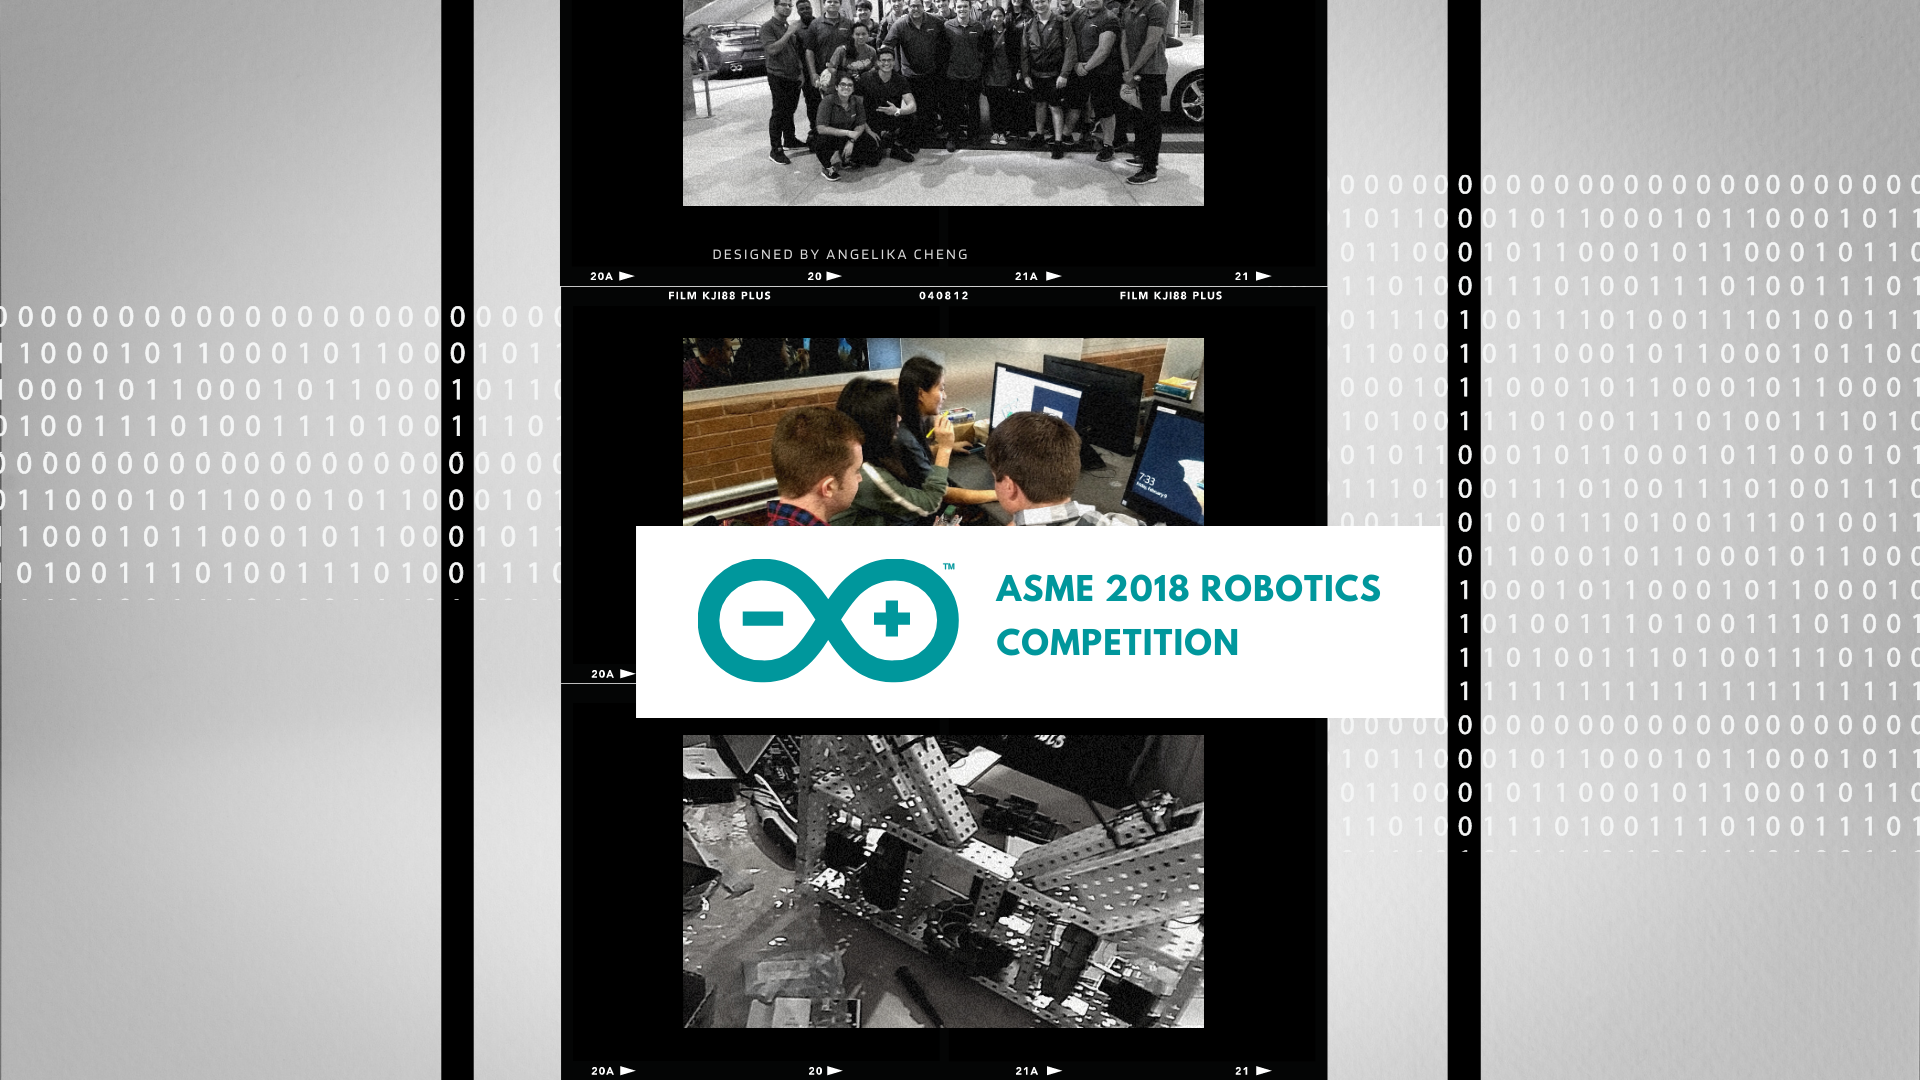 Images of my Robotics Competition